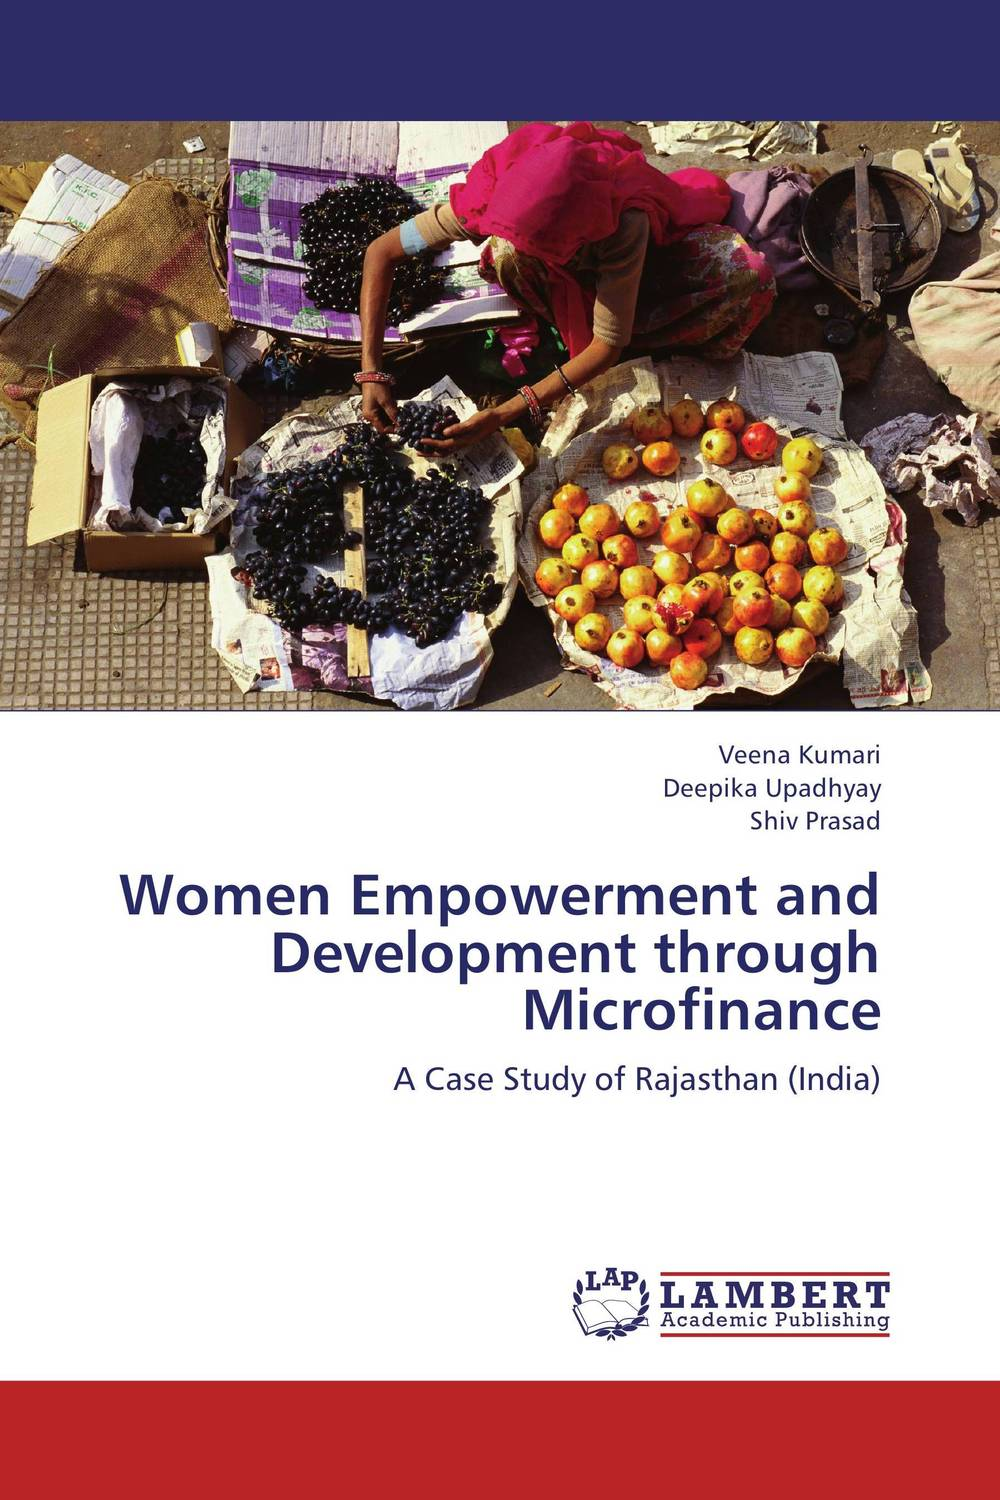 Women Empowerment and Development through Microfinance women as work force in rural india